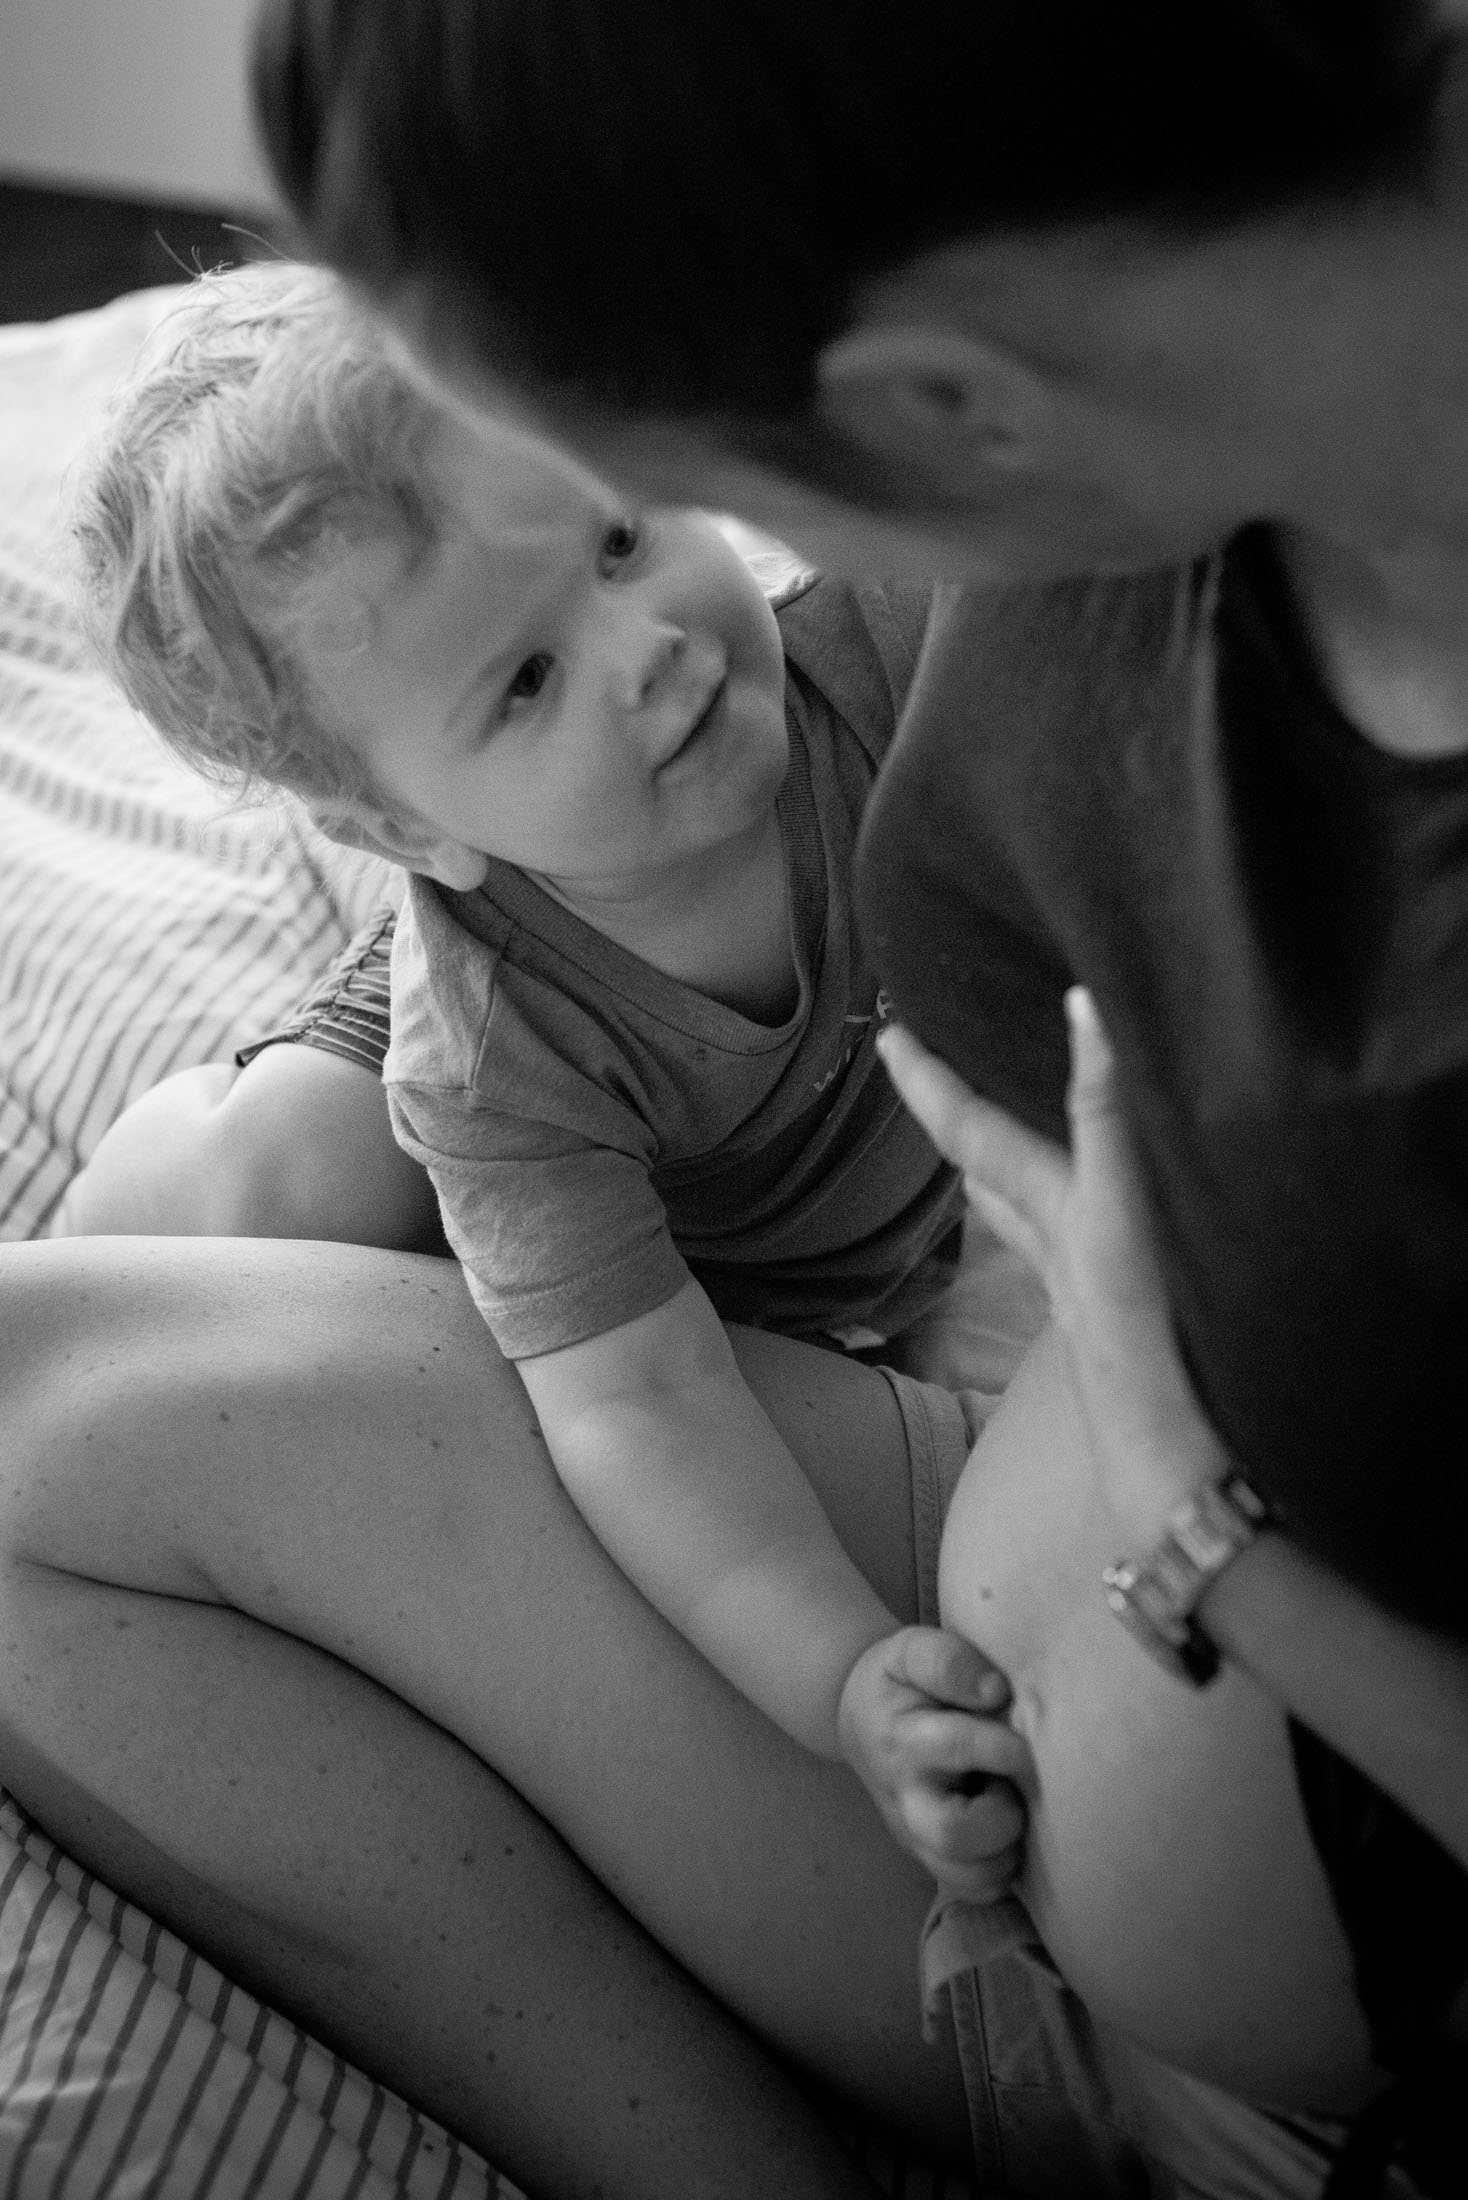 West_Family-Photography-unposed11.JPG